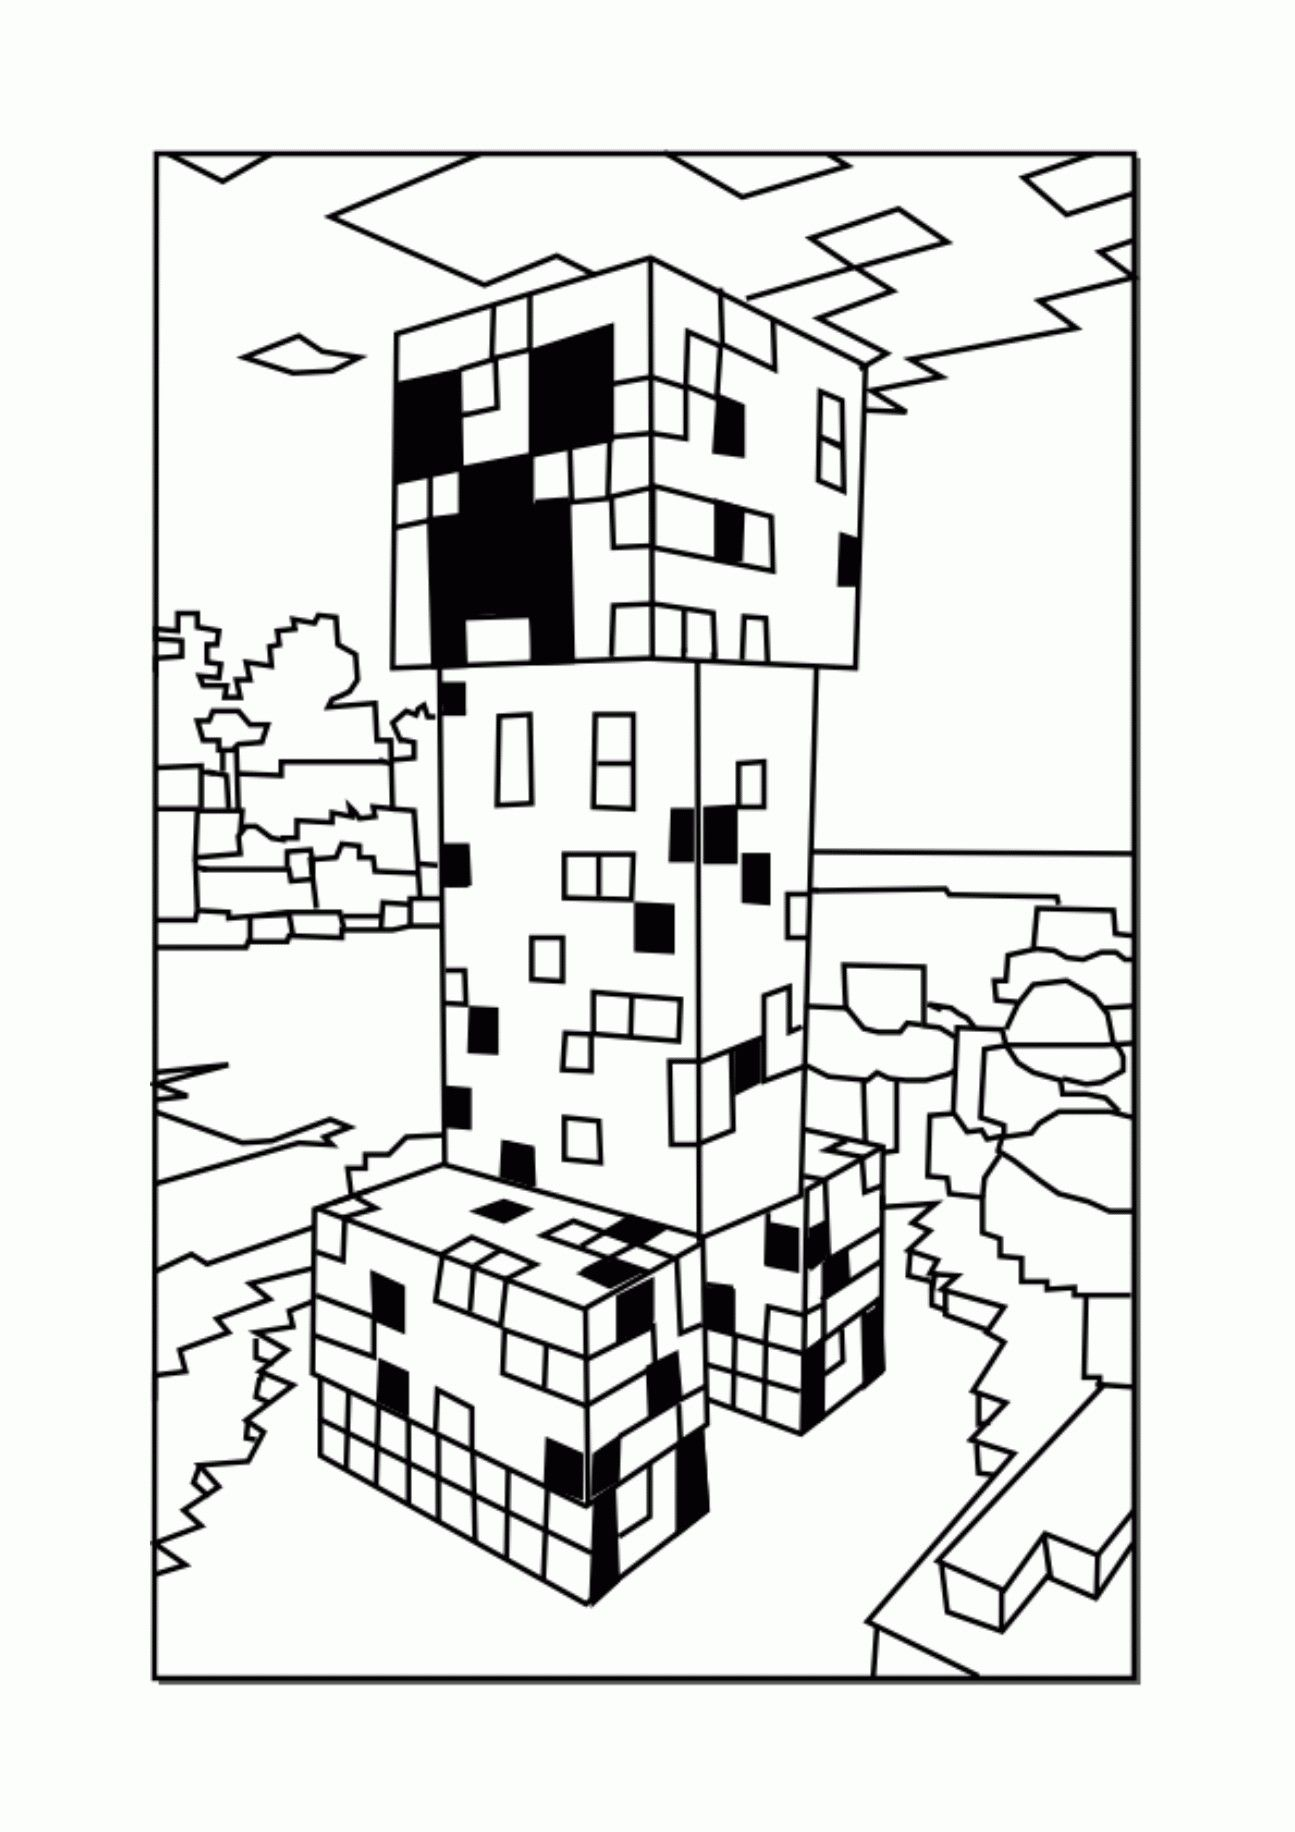 10 Minecraft Coloring Blaze Minecraft Coloring Sheets Free Minecraft Coloring Sheets Print Minecraft Coloring Pages Minecraft Printables Free Coloring Pages [ 1832 x 1295 Pixel ]